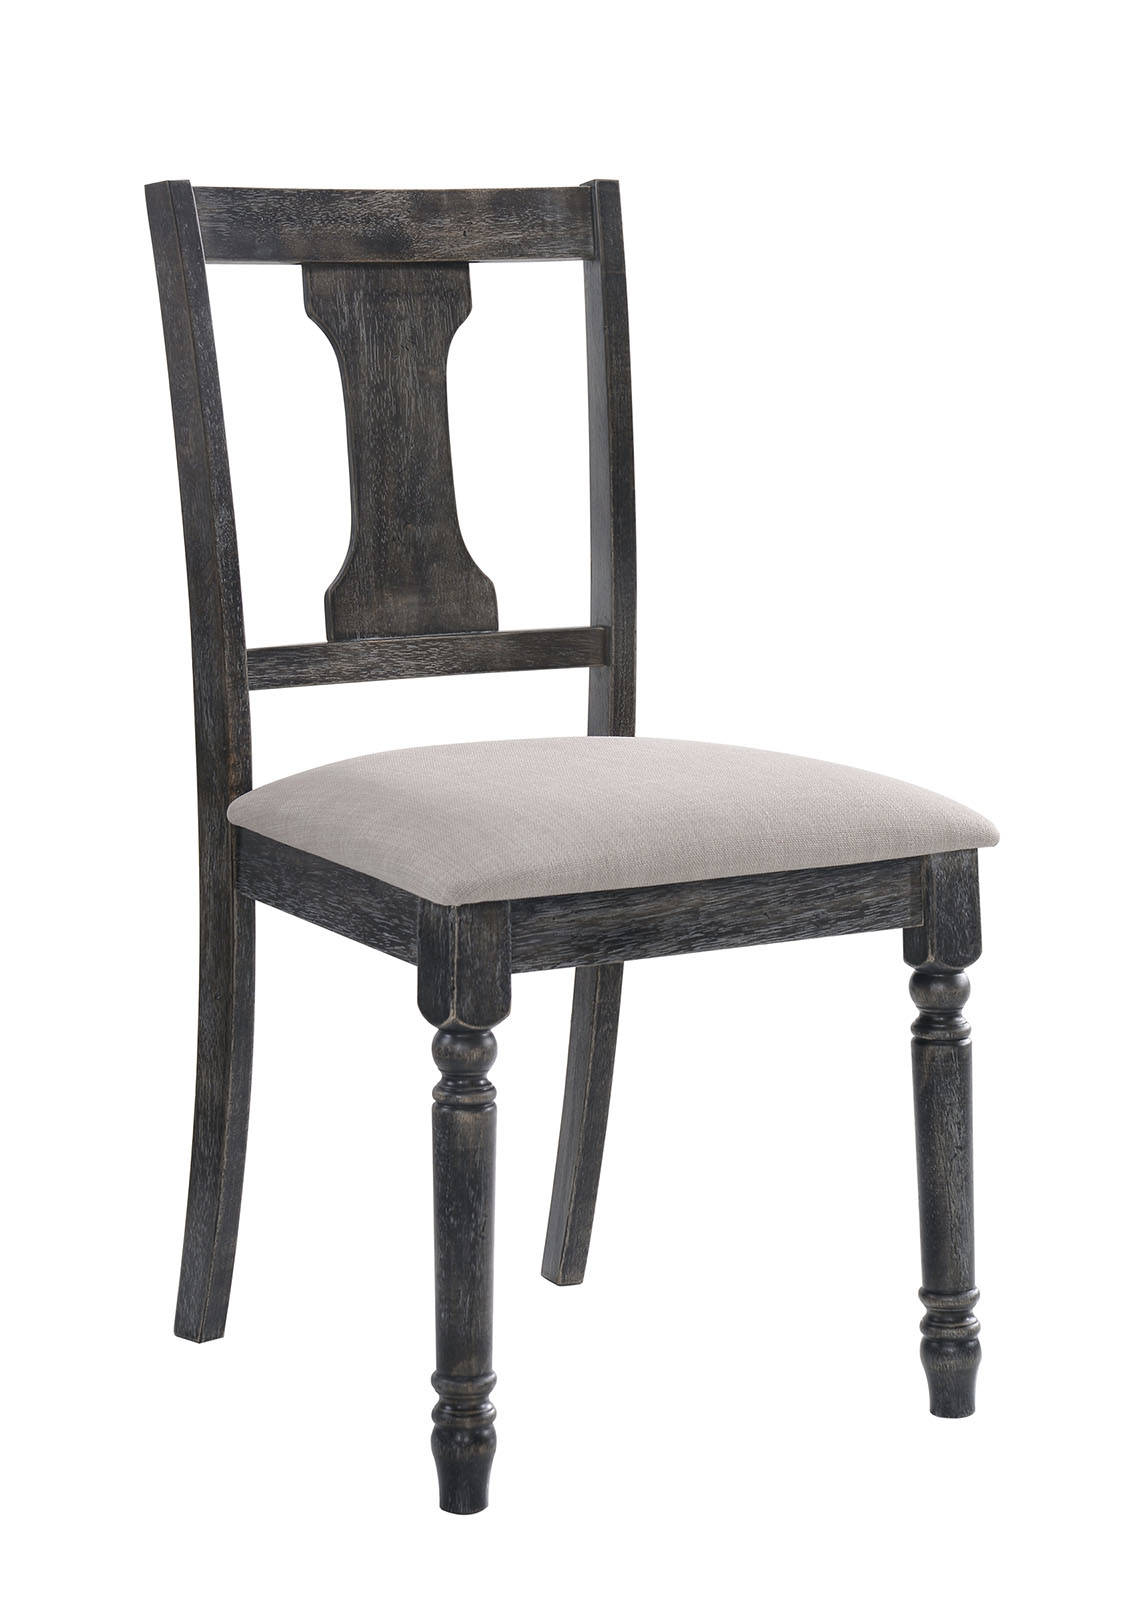 Furniture of America CM3137SC Muriel Rustic Dining Chair Set of 2